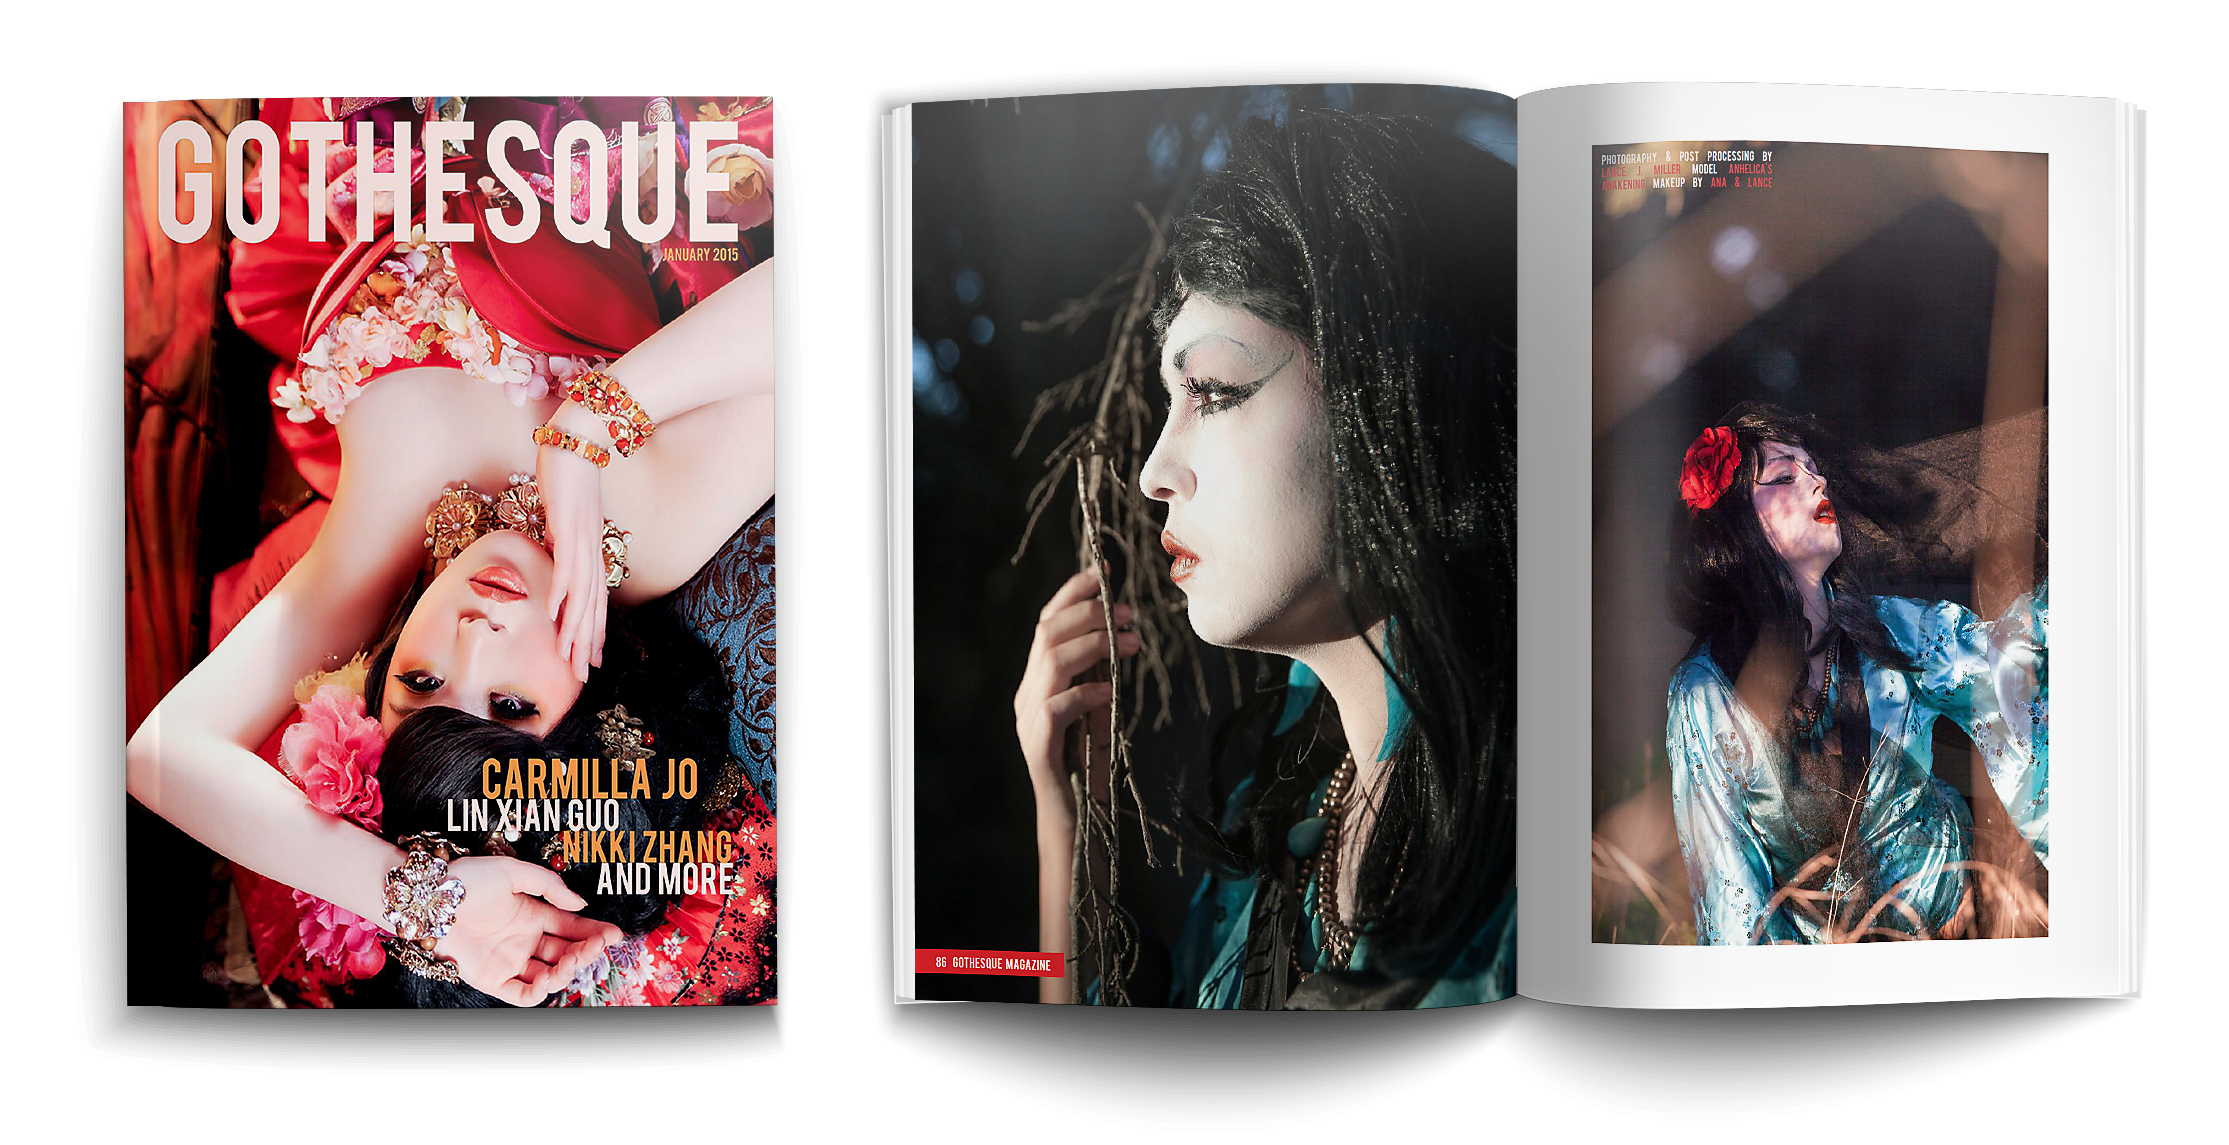 Gothesque_Magazine_Issue_20_January_2015_Render4.png